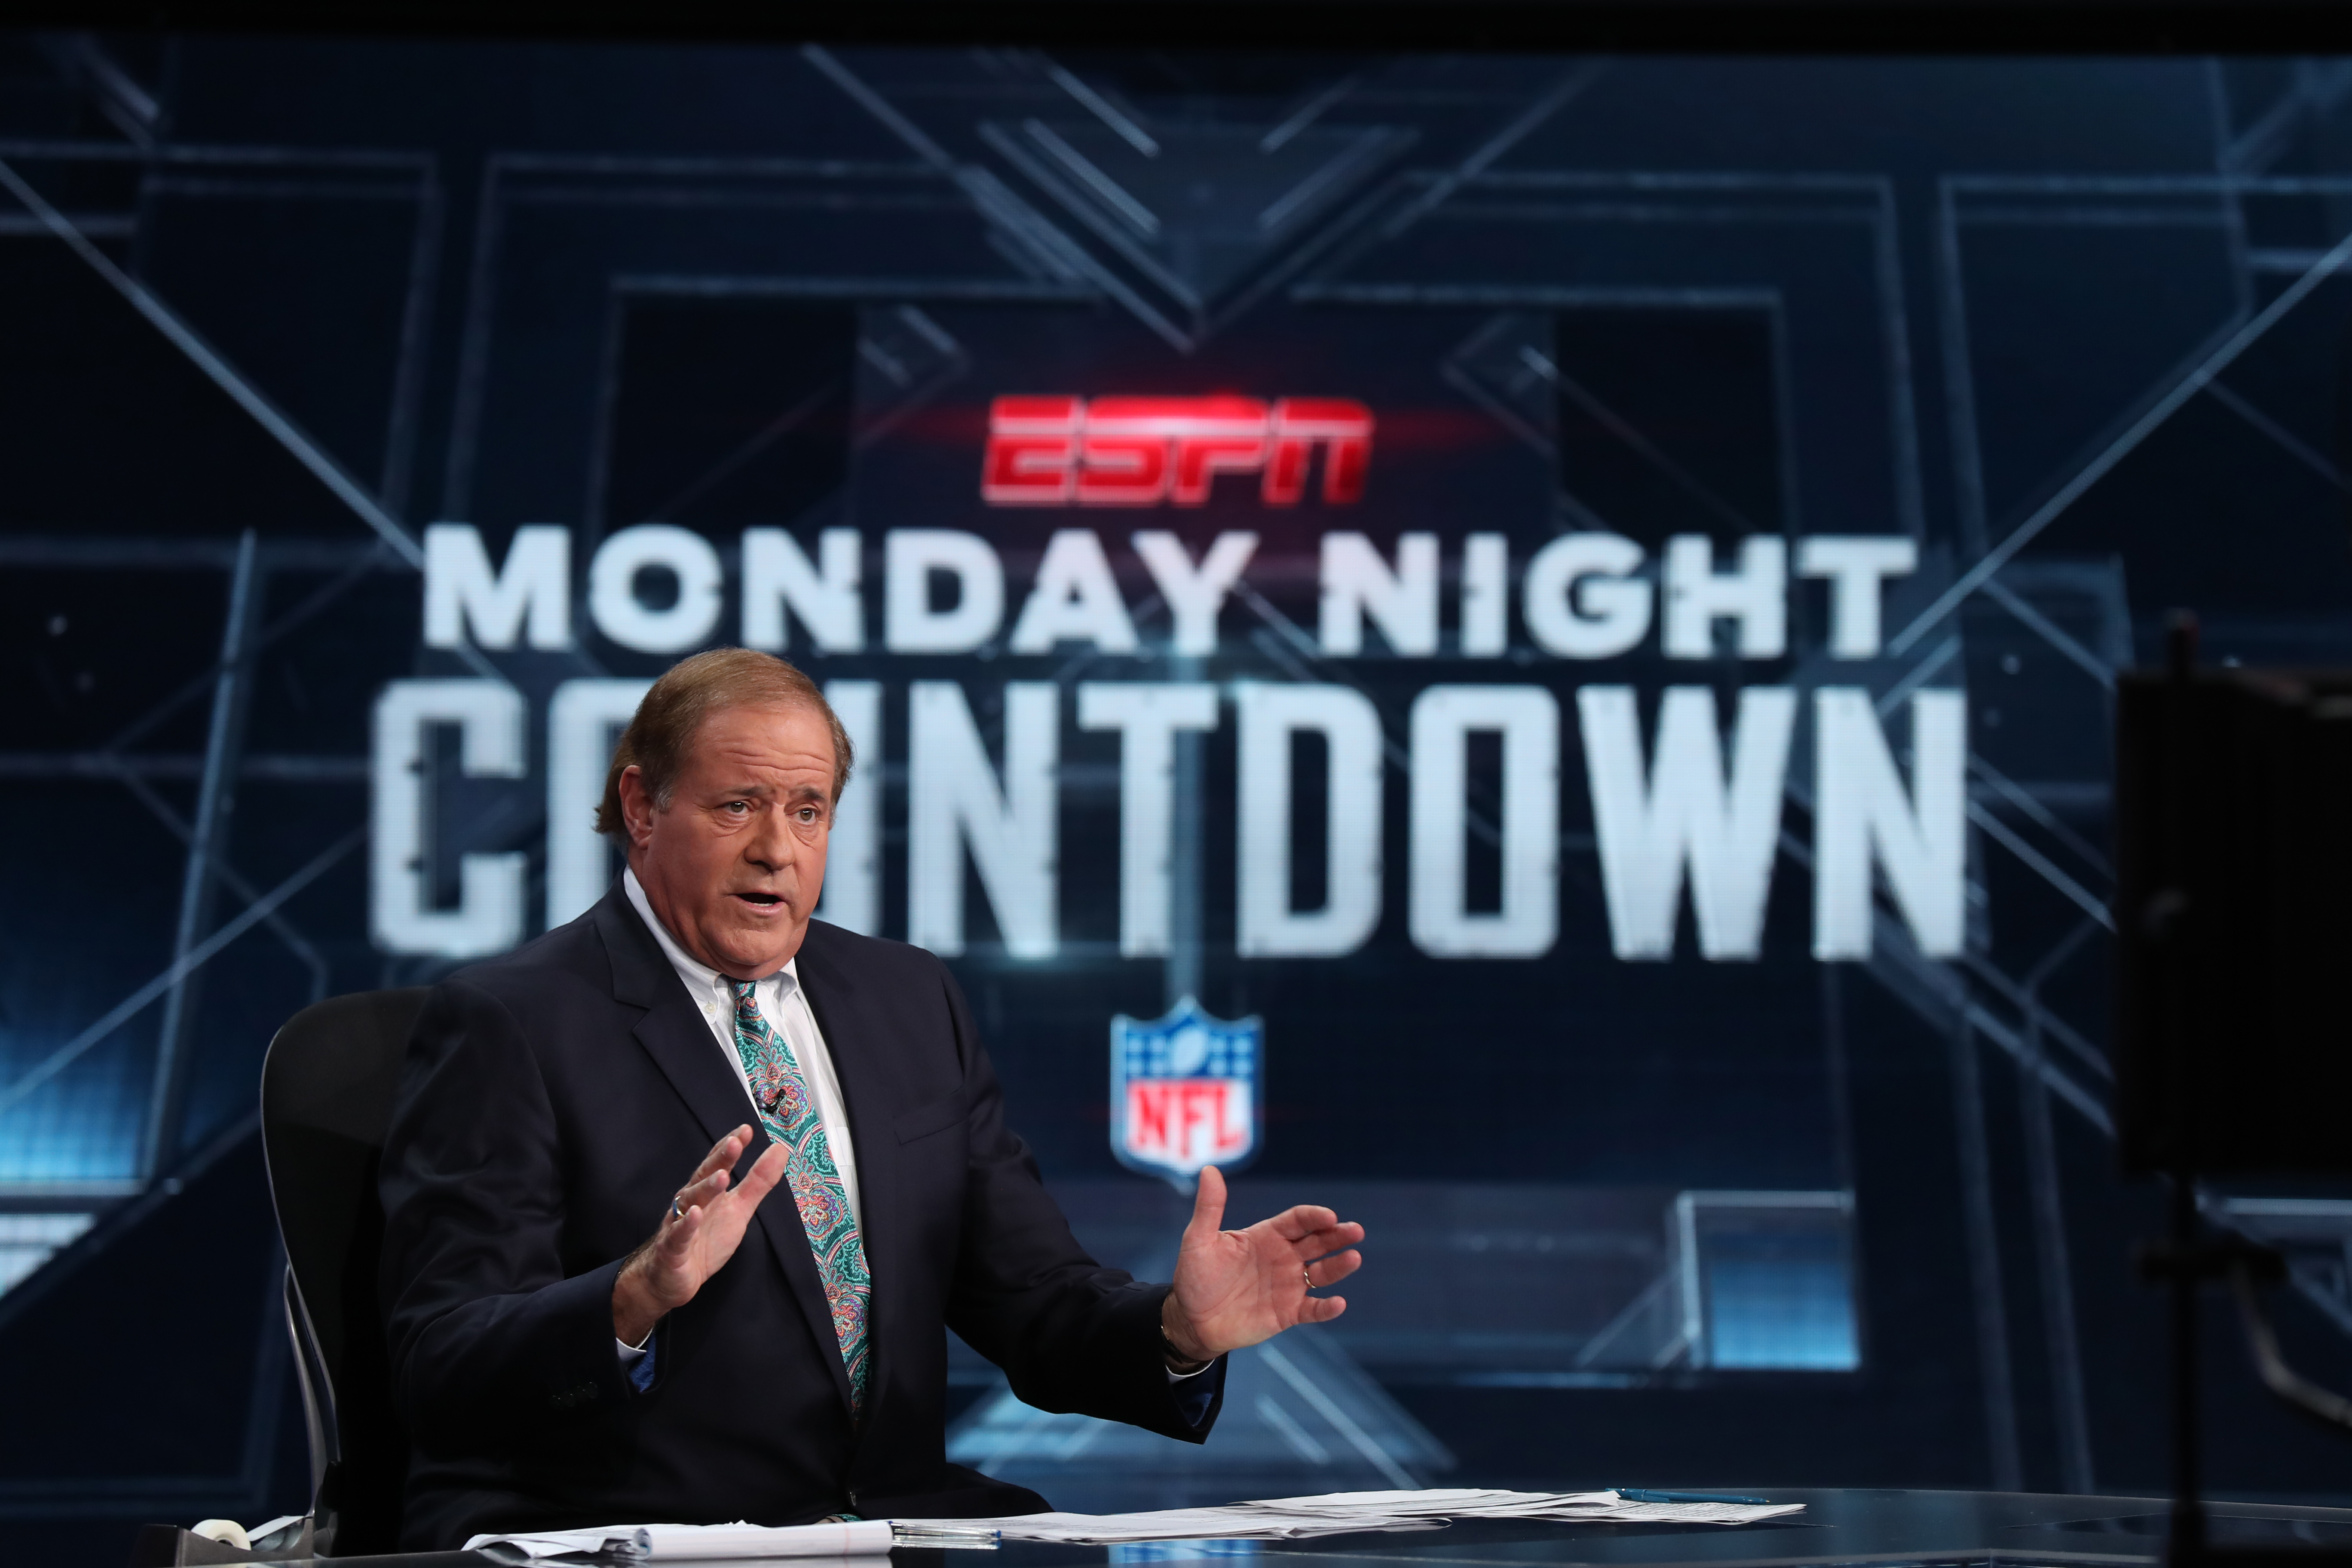 Chris Berman will welcome Jim Kelly and Bruce Smith on the next two installments of ESPN's Monday Night Countdown. (ESPN Images)